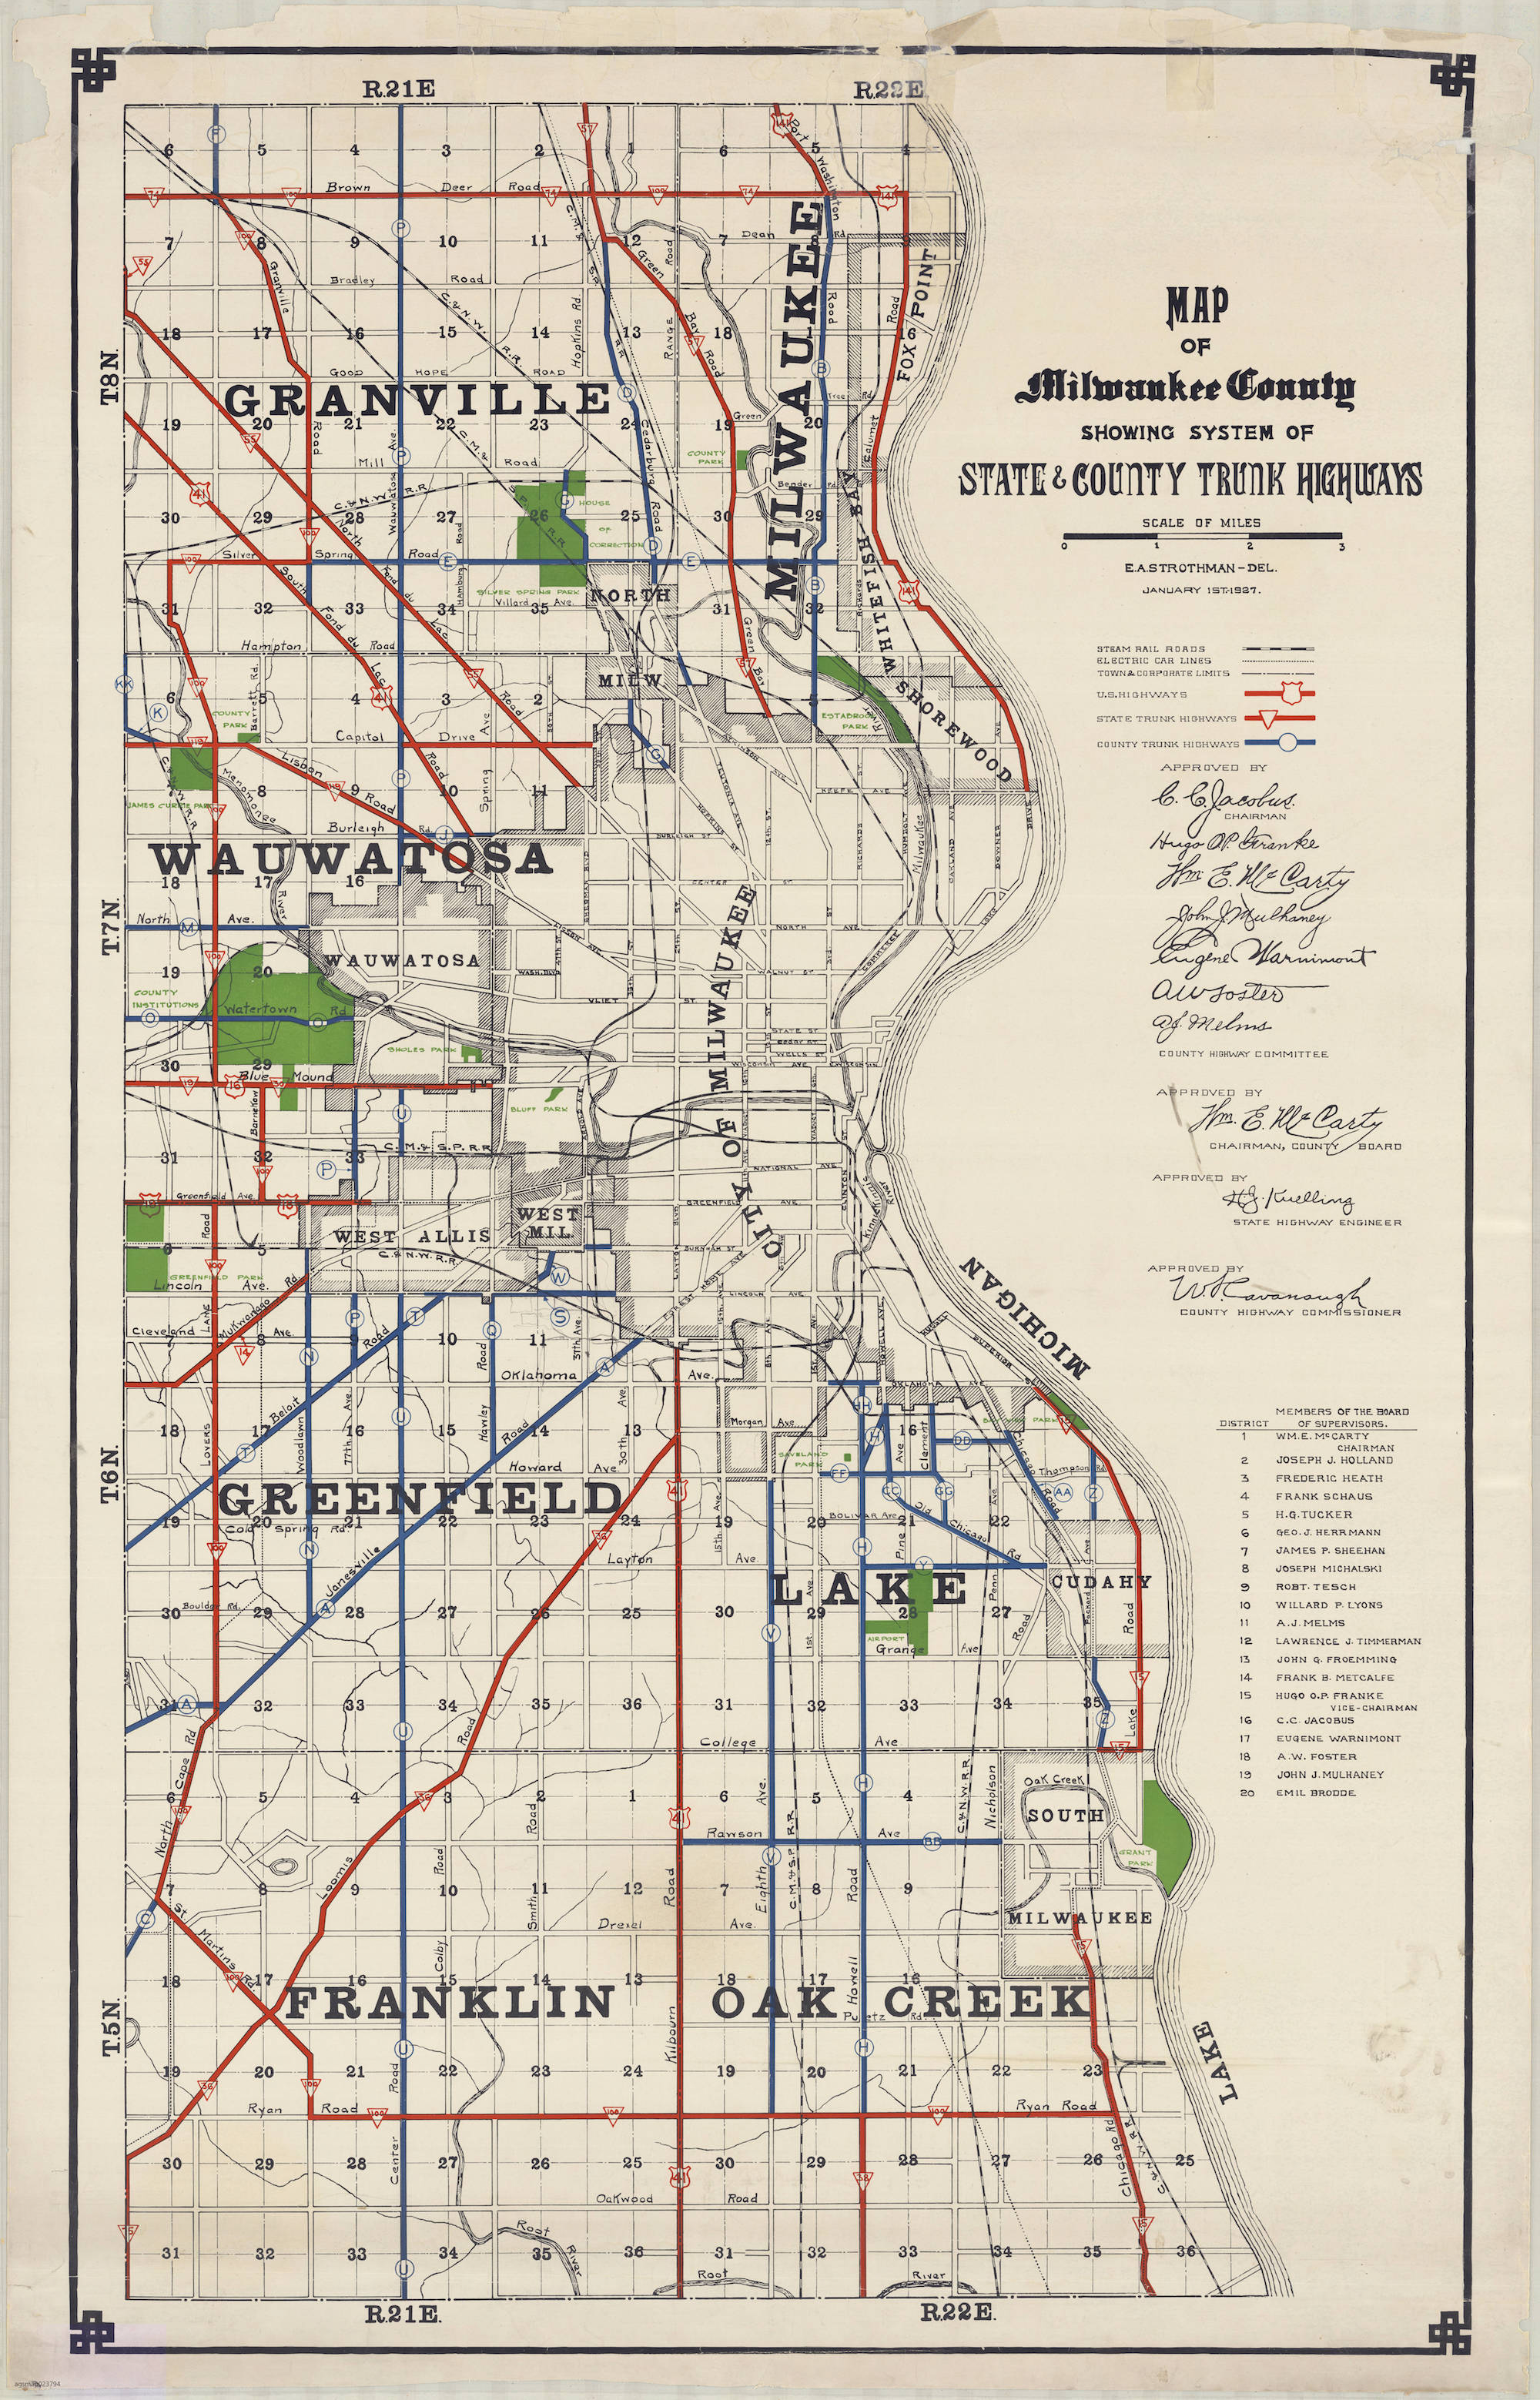 <table class=&quot;lightbox&quot;><tr><td colspan=2 class=&quot;lightbox-title&quot;>Milwaukee County Roads</td></tr><tr><td colspan=2 class=&quot;lightbox-caption&quot;>This 1927 map shows state and county trunk highways in Milwaukee County.</td></tr><tr><td colspan=2 class=&quot;lightbox-spacer&quot;></td></tr><tr class=&quot;lightbox-detail&quot;><td class=&quot;cell-title&quot;>Source: </td><td class=&quot;cell-value&quot;>From the American Geographical Society Library Digital Map Collection. University of Wisconsin-Milwaukee Libraries.<br /><a href=&quot;https://collections.lib.uwm.edu/digital/collection/agdm/id/13816/rec/2&quot; target=&quot;_blank&quot;>University of Wisconsin-Milwaukee Libraries</a></td></tr><tr class=&quot;filler-row&quot;><td colspan=2>&nbsp;</td></tr></table>